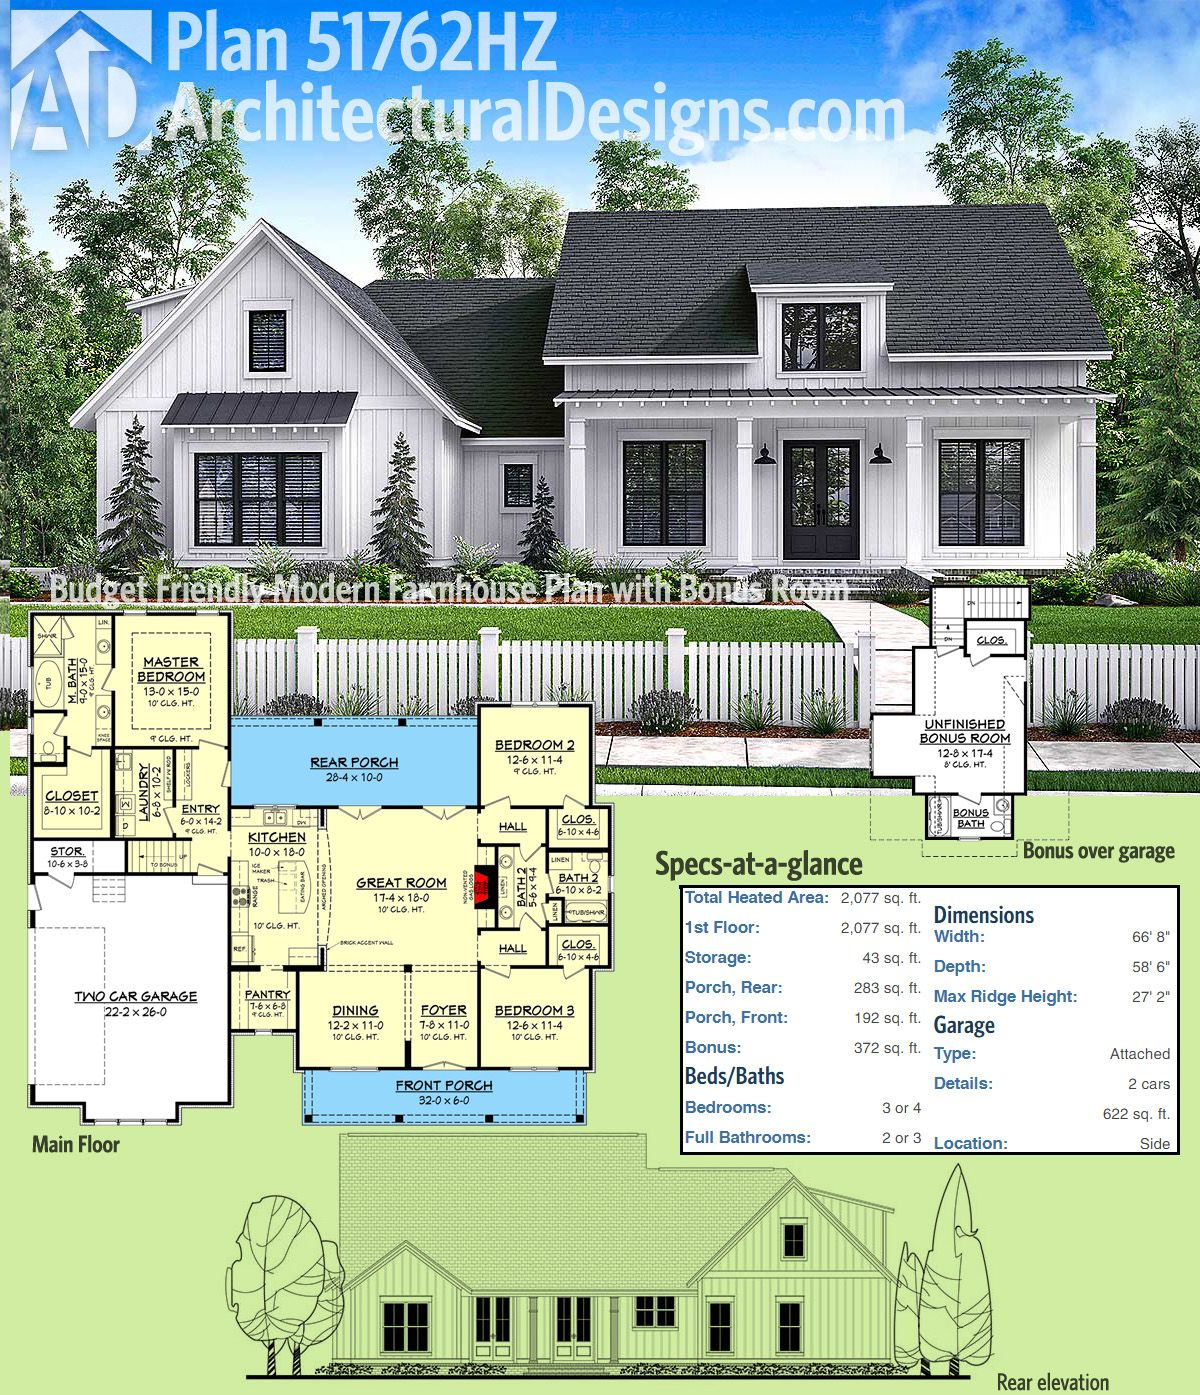 Plan 51762hz budget friendly modern farmhouse plan with for Us home plans